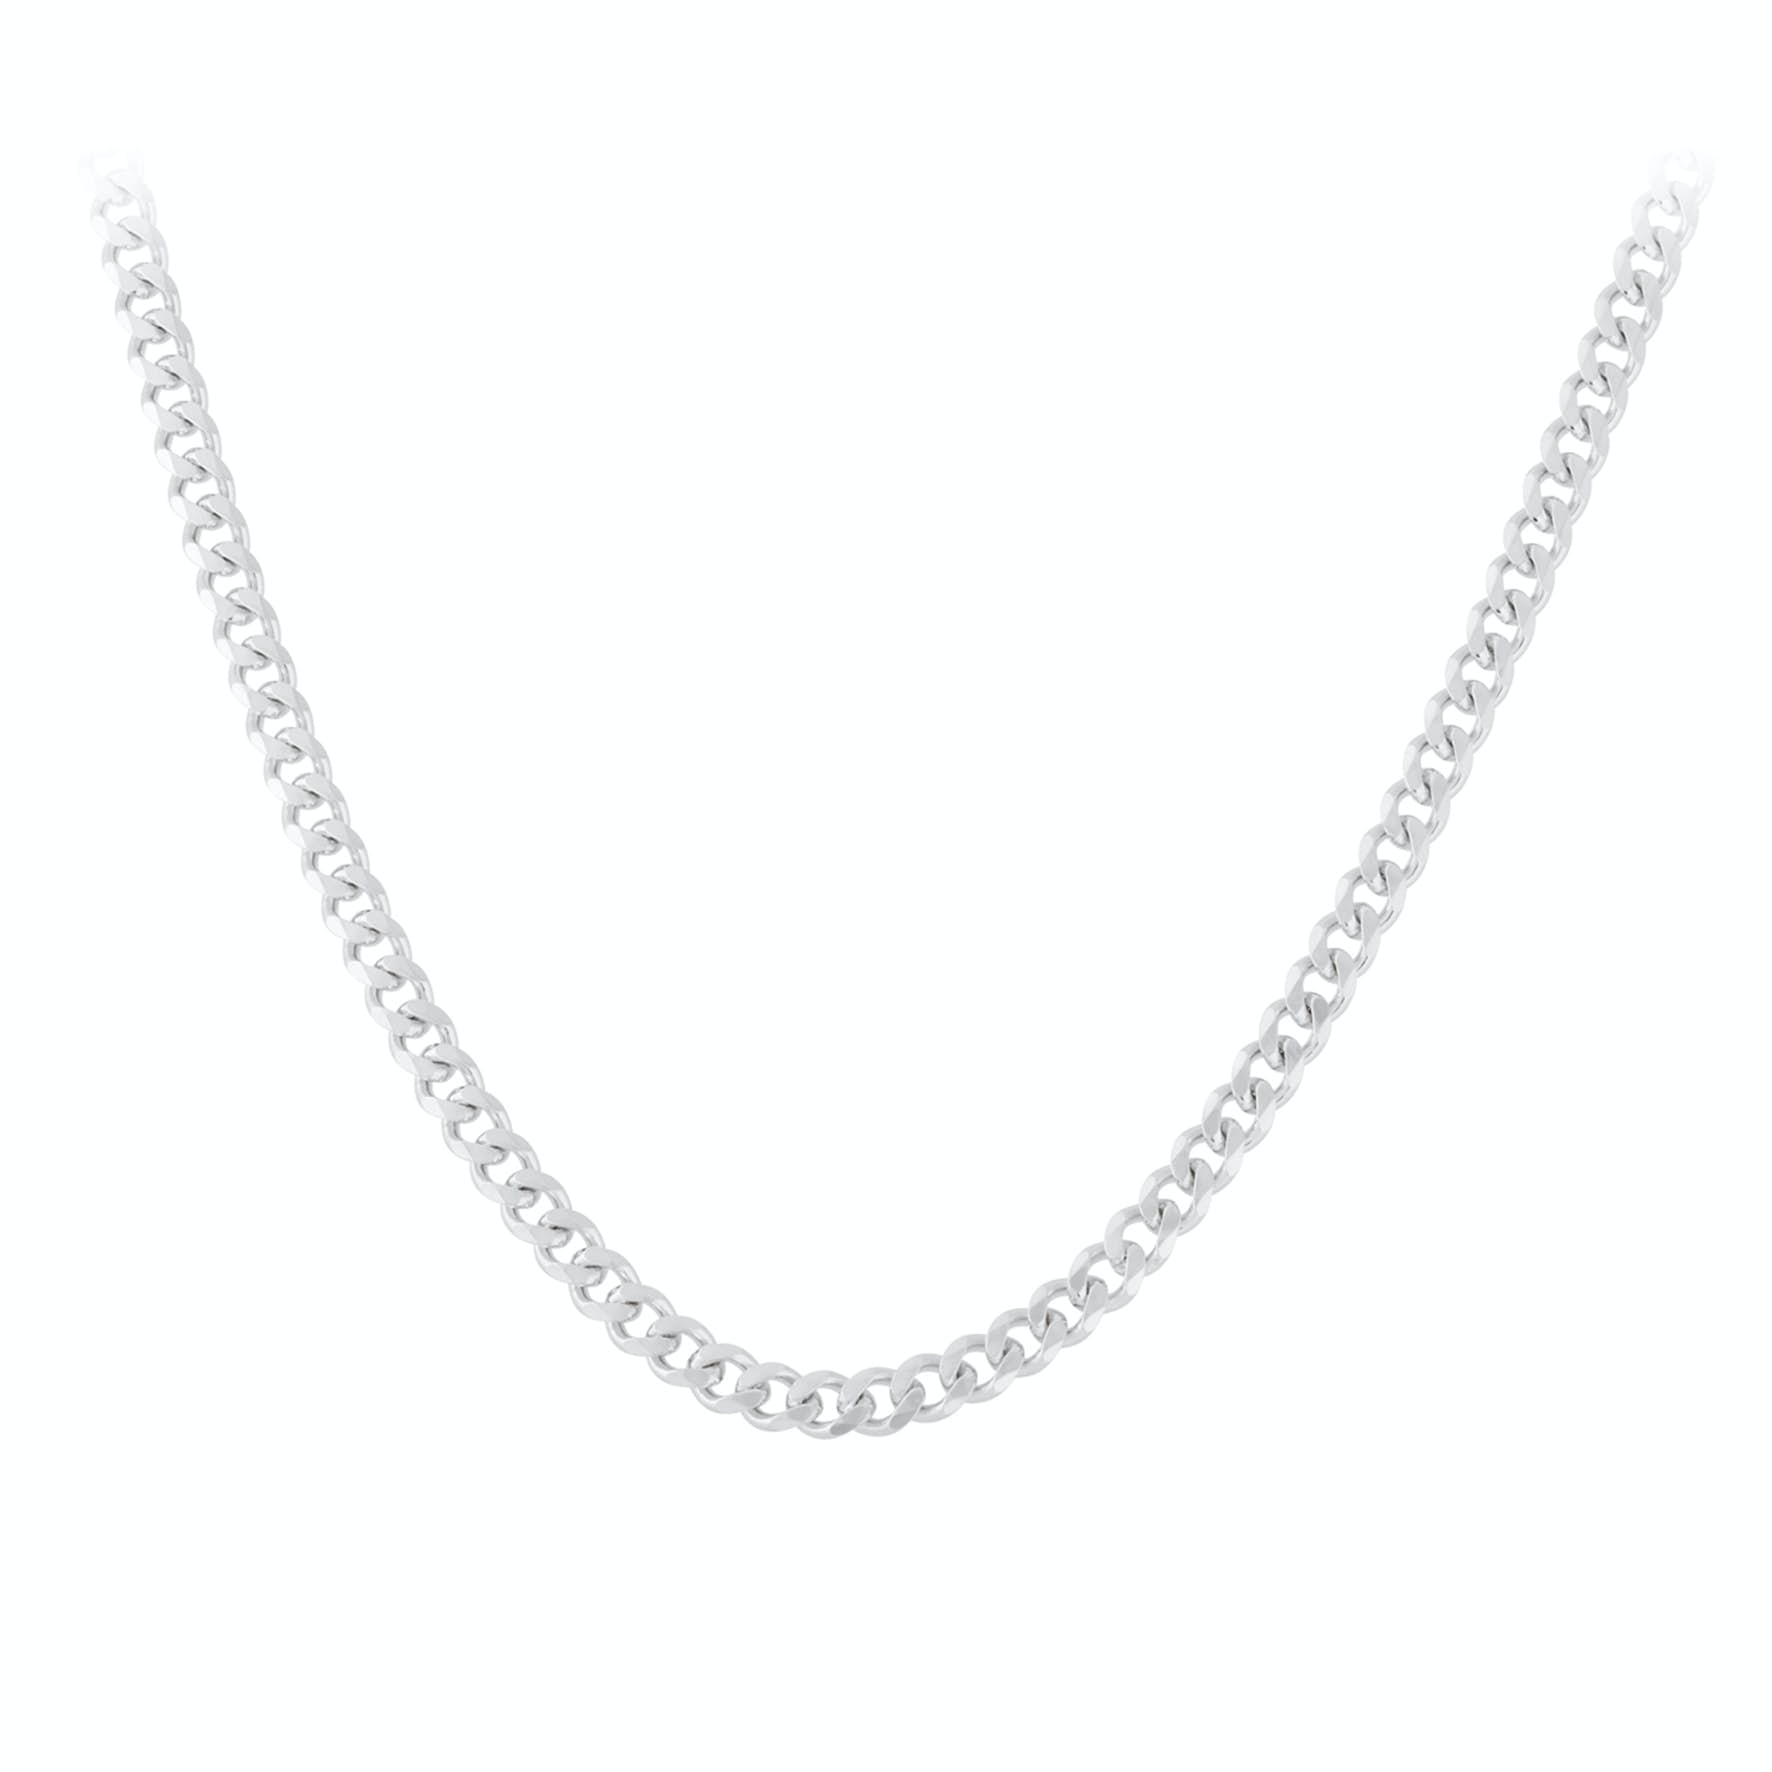 Solid Necklace von Pernille Corydon in Silber Sterling 925